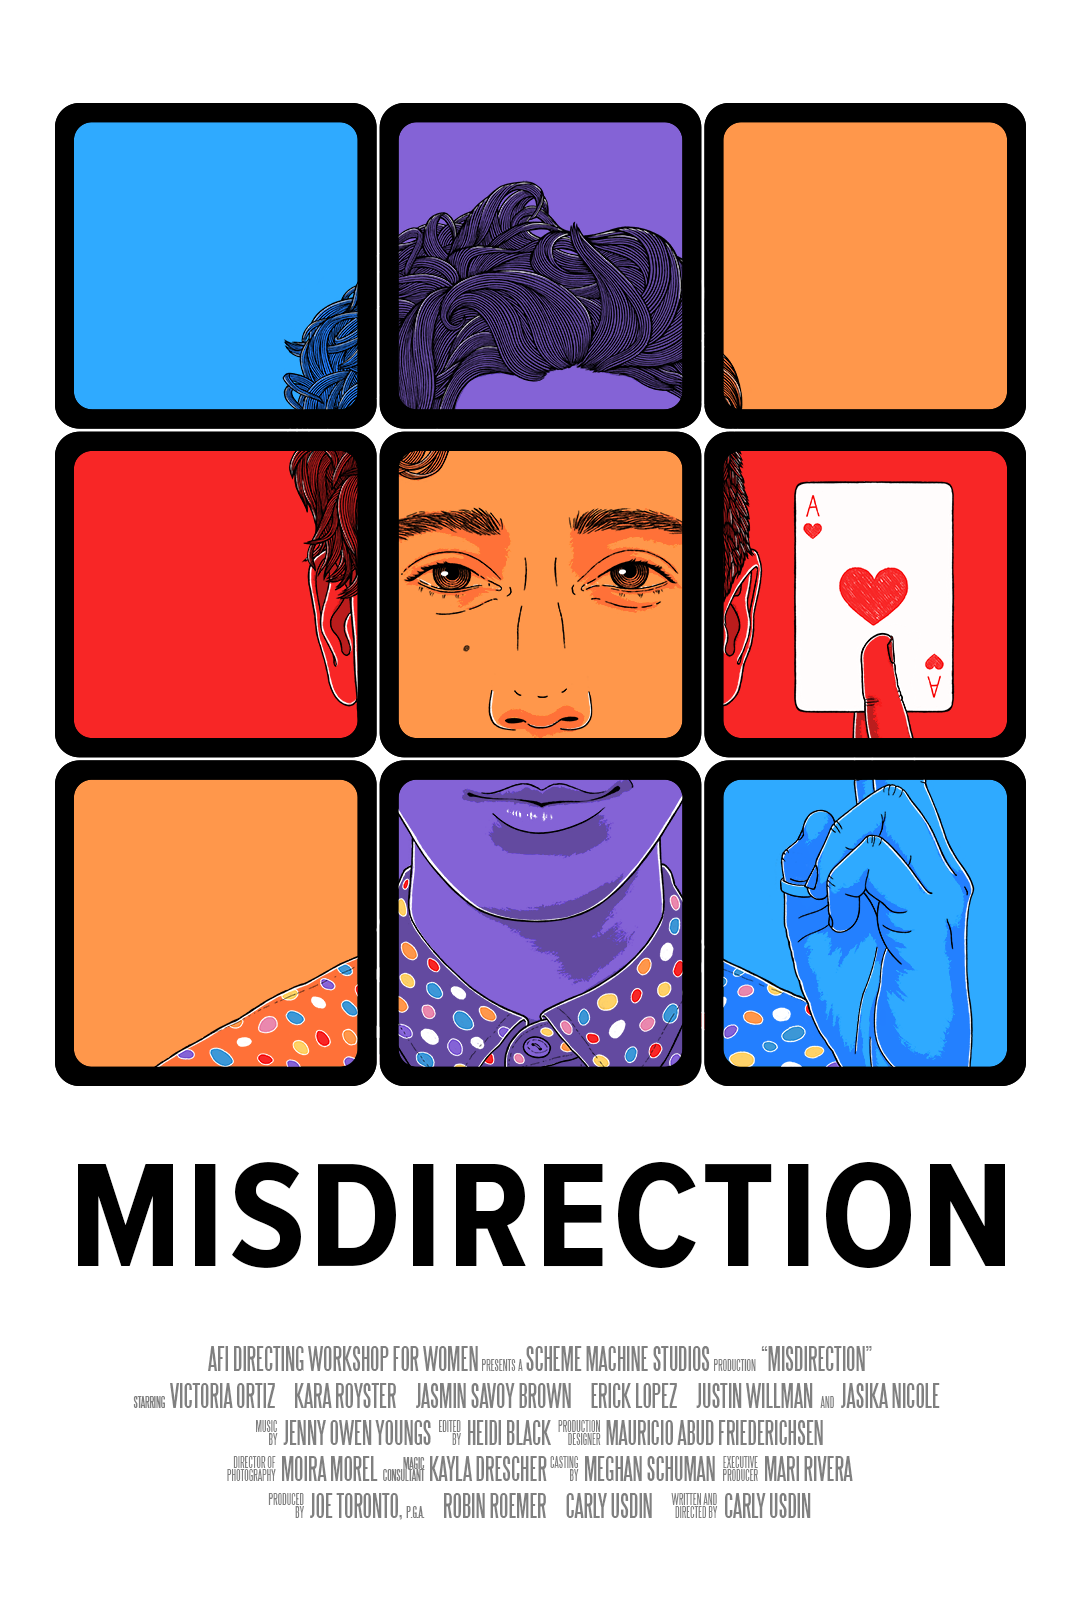 Misdirection poster (illustrated and designed by Kristine Thune (kristinethune.com))